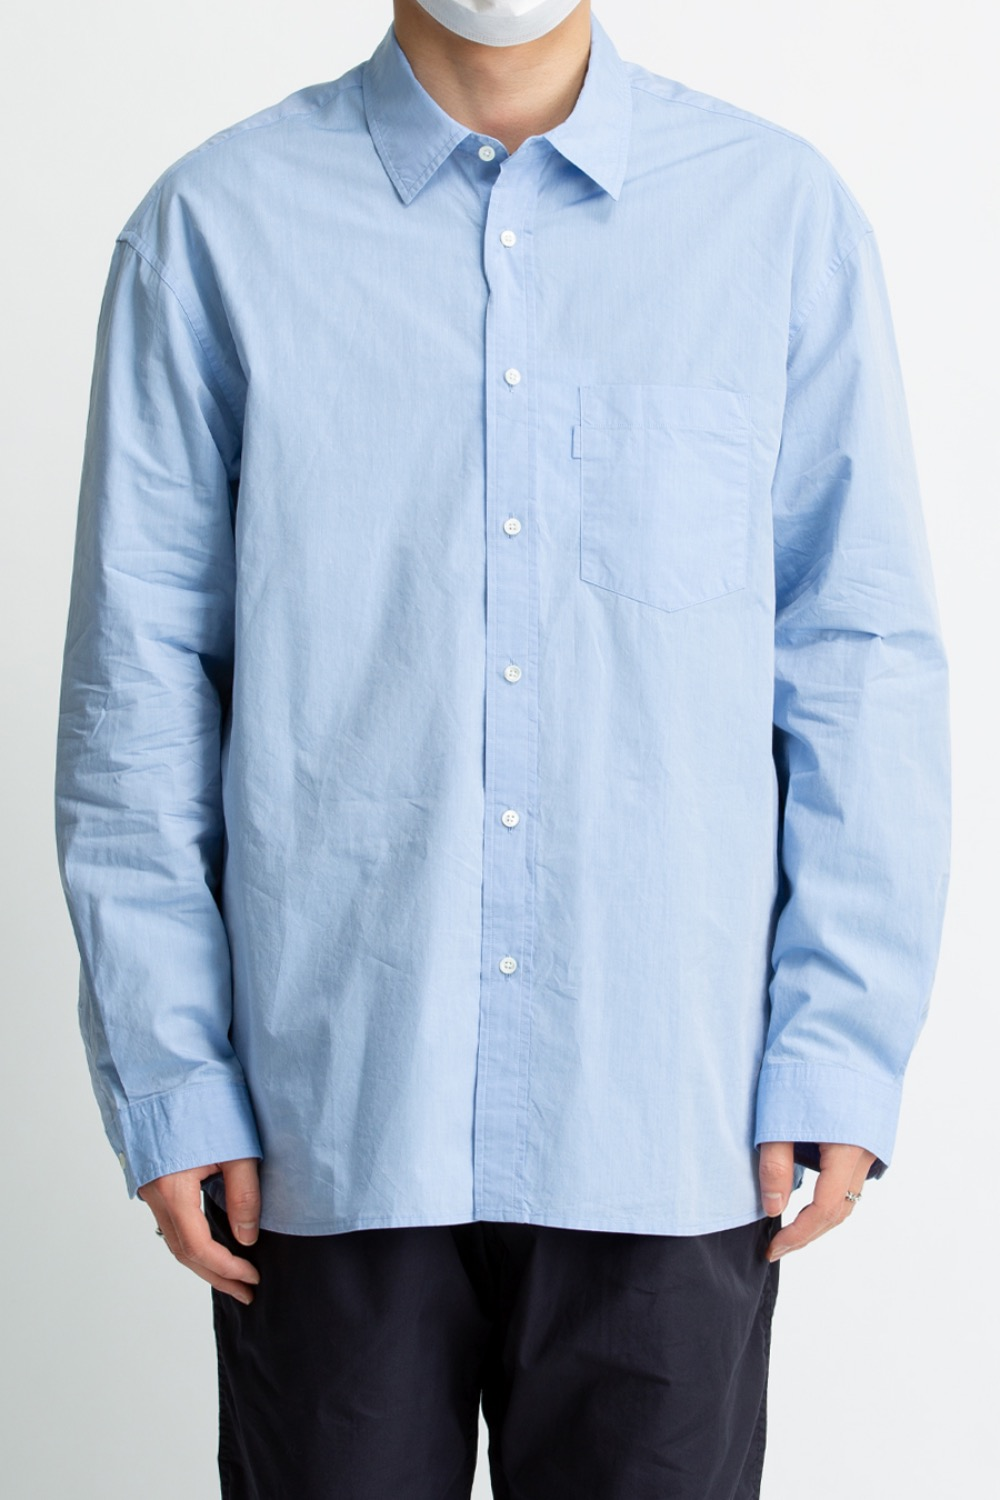 COMFORT SHIRT GENETIC COTTON 120/2 CHAMBRAY TYPEWRITER CLOTH WASHER FINISH SAX